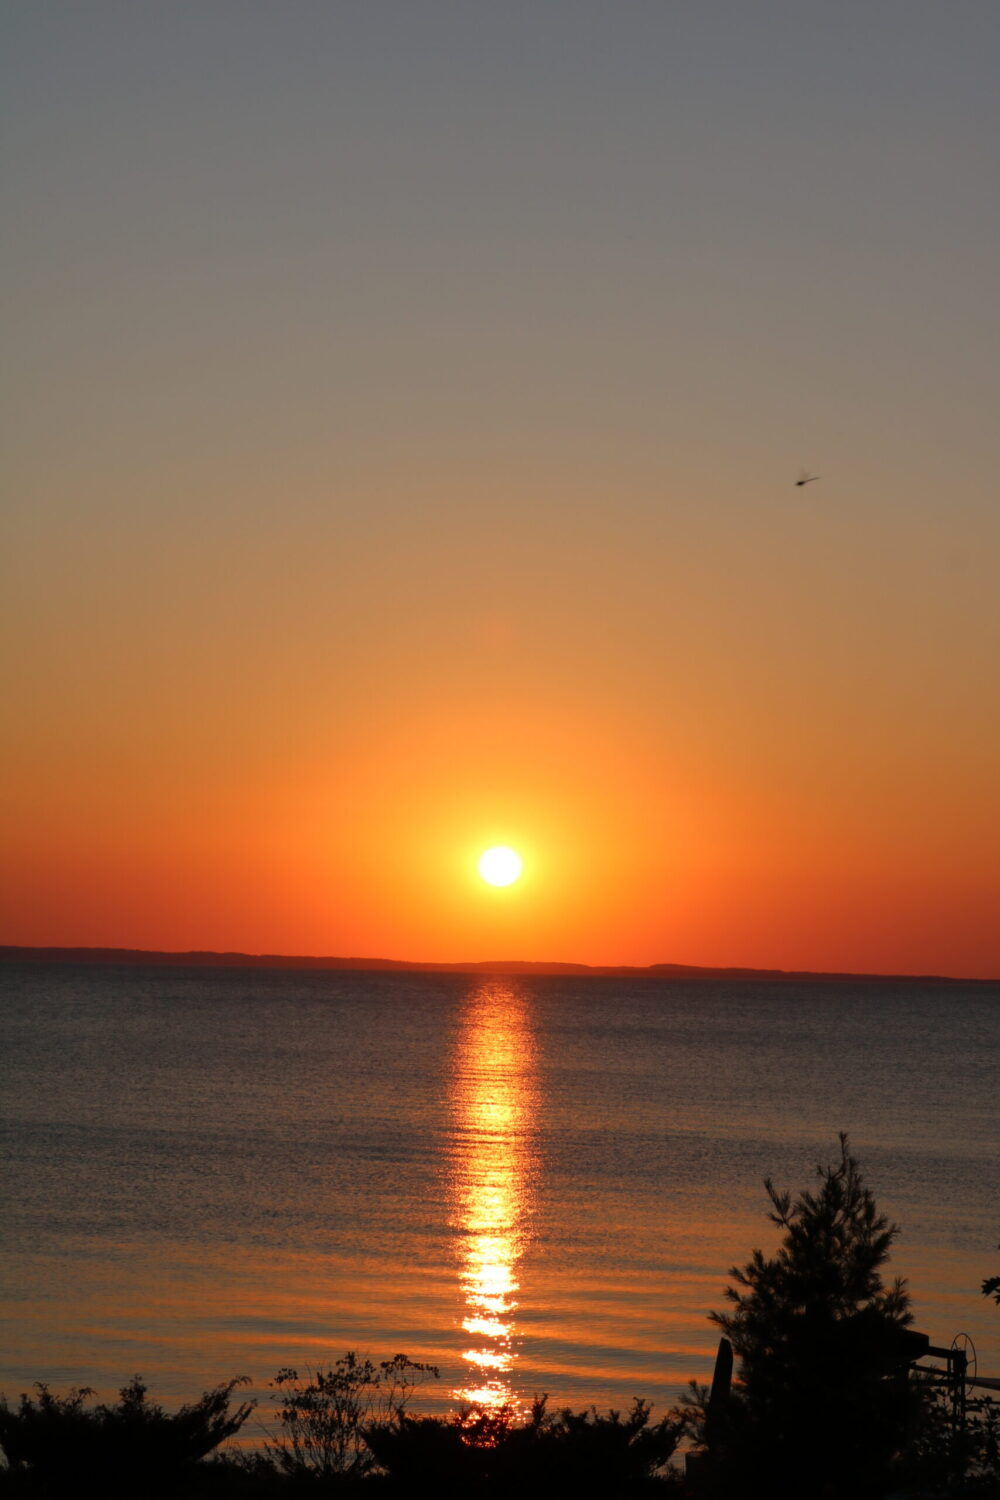 2020 Year in Review I Sunset over Grand Traverse Bay in Northern Michigan